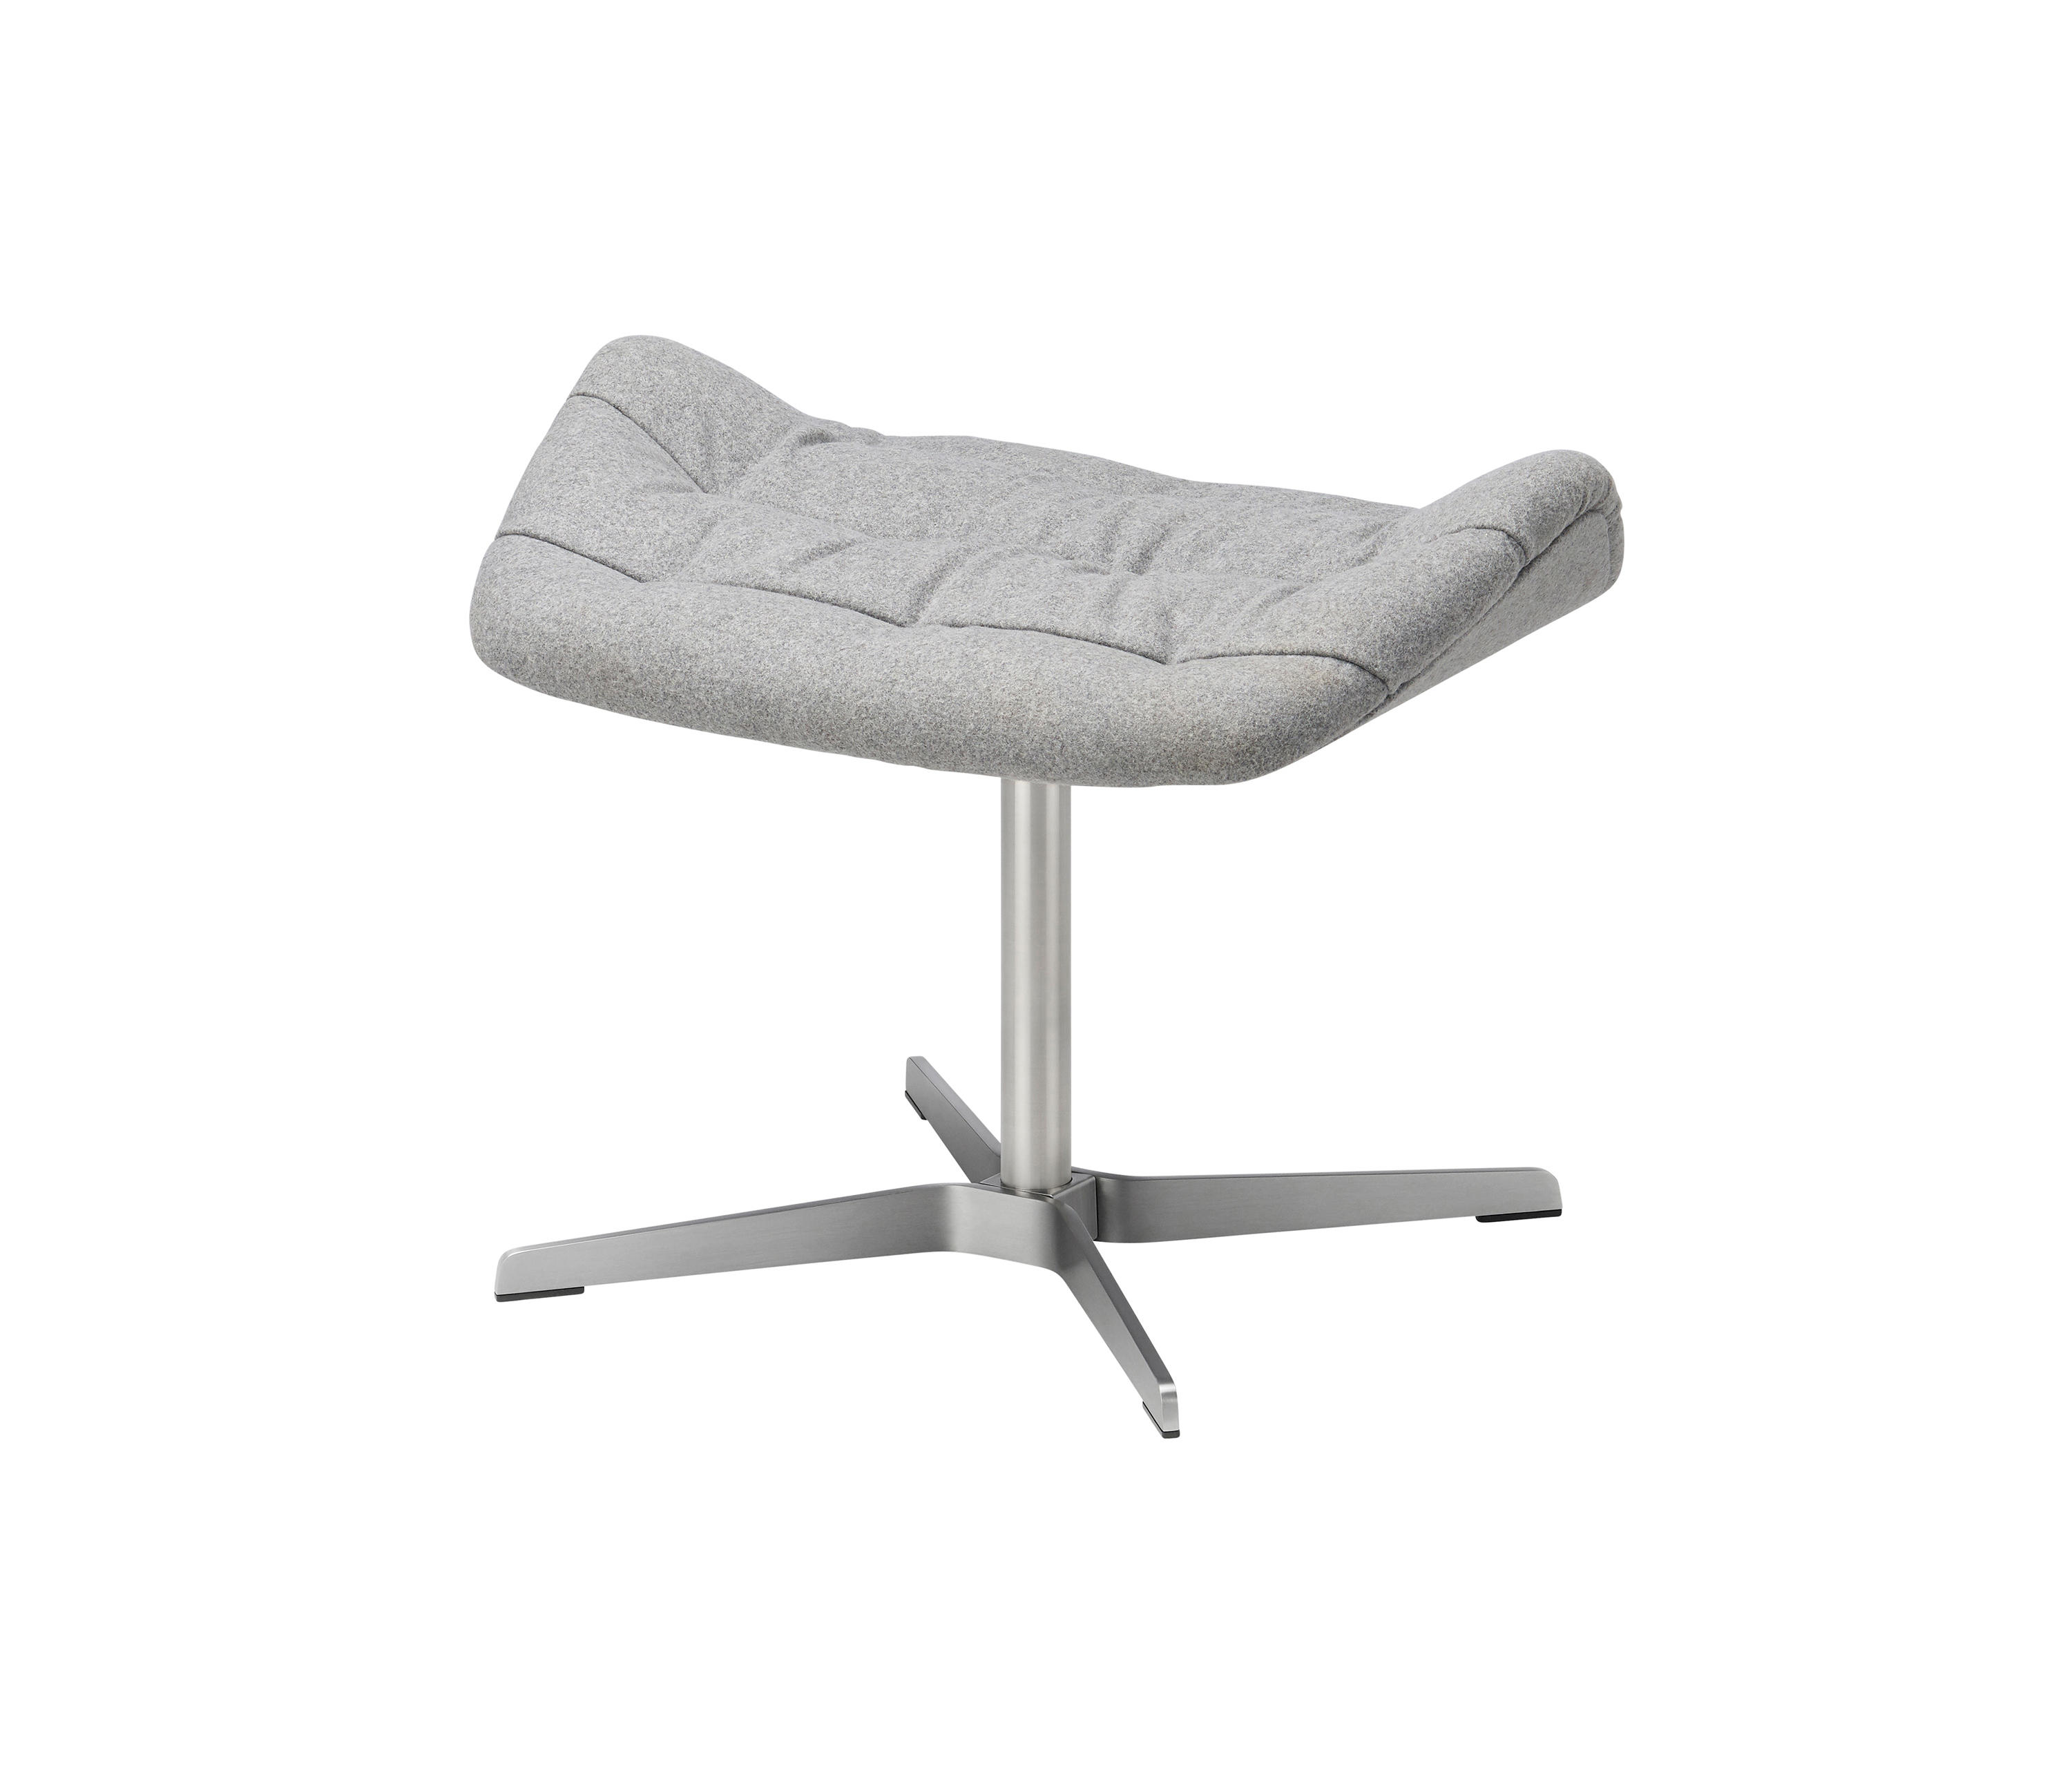 Lounge-sessel 808 808 Hocker Von Thonet Architonic